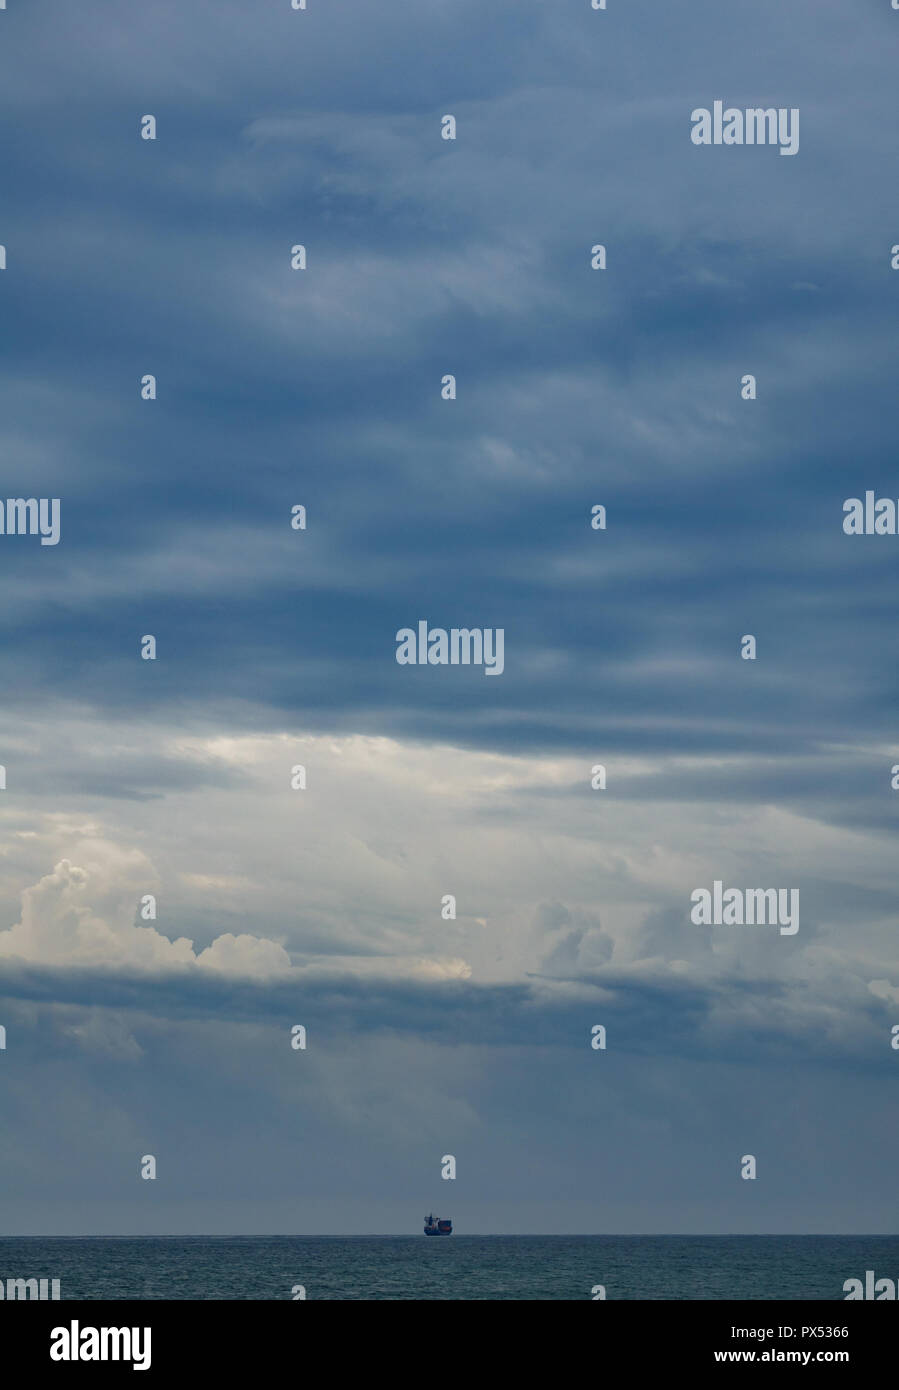 Long shot of cargo ship disappearing in the horizon - Stock Image